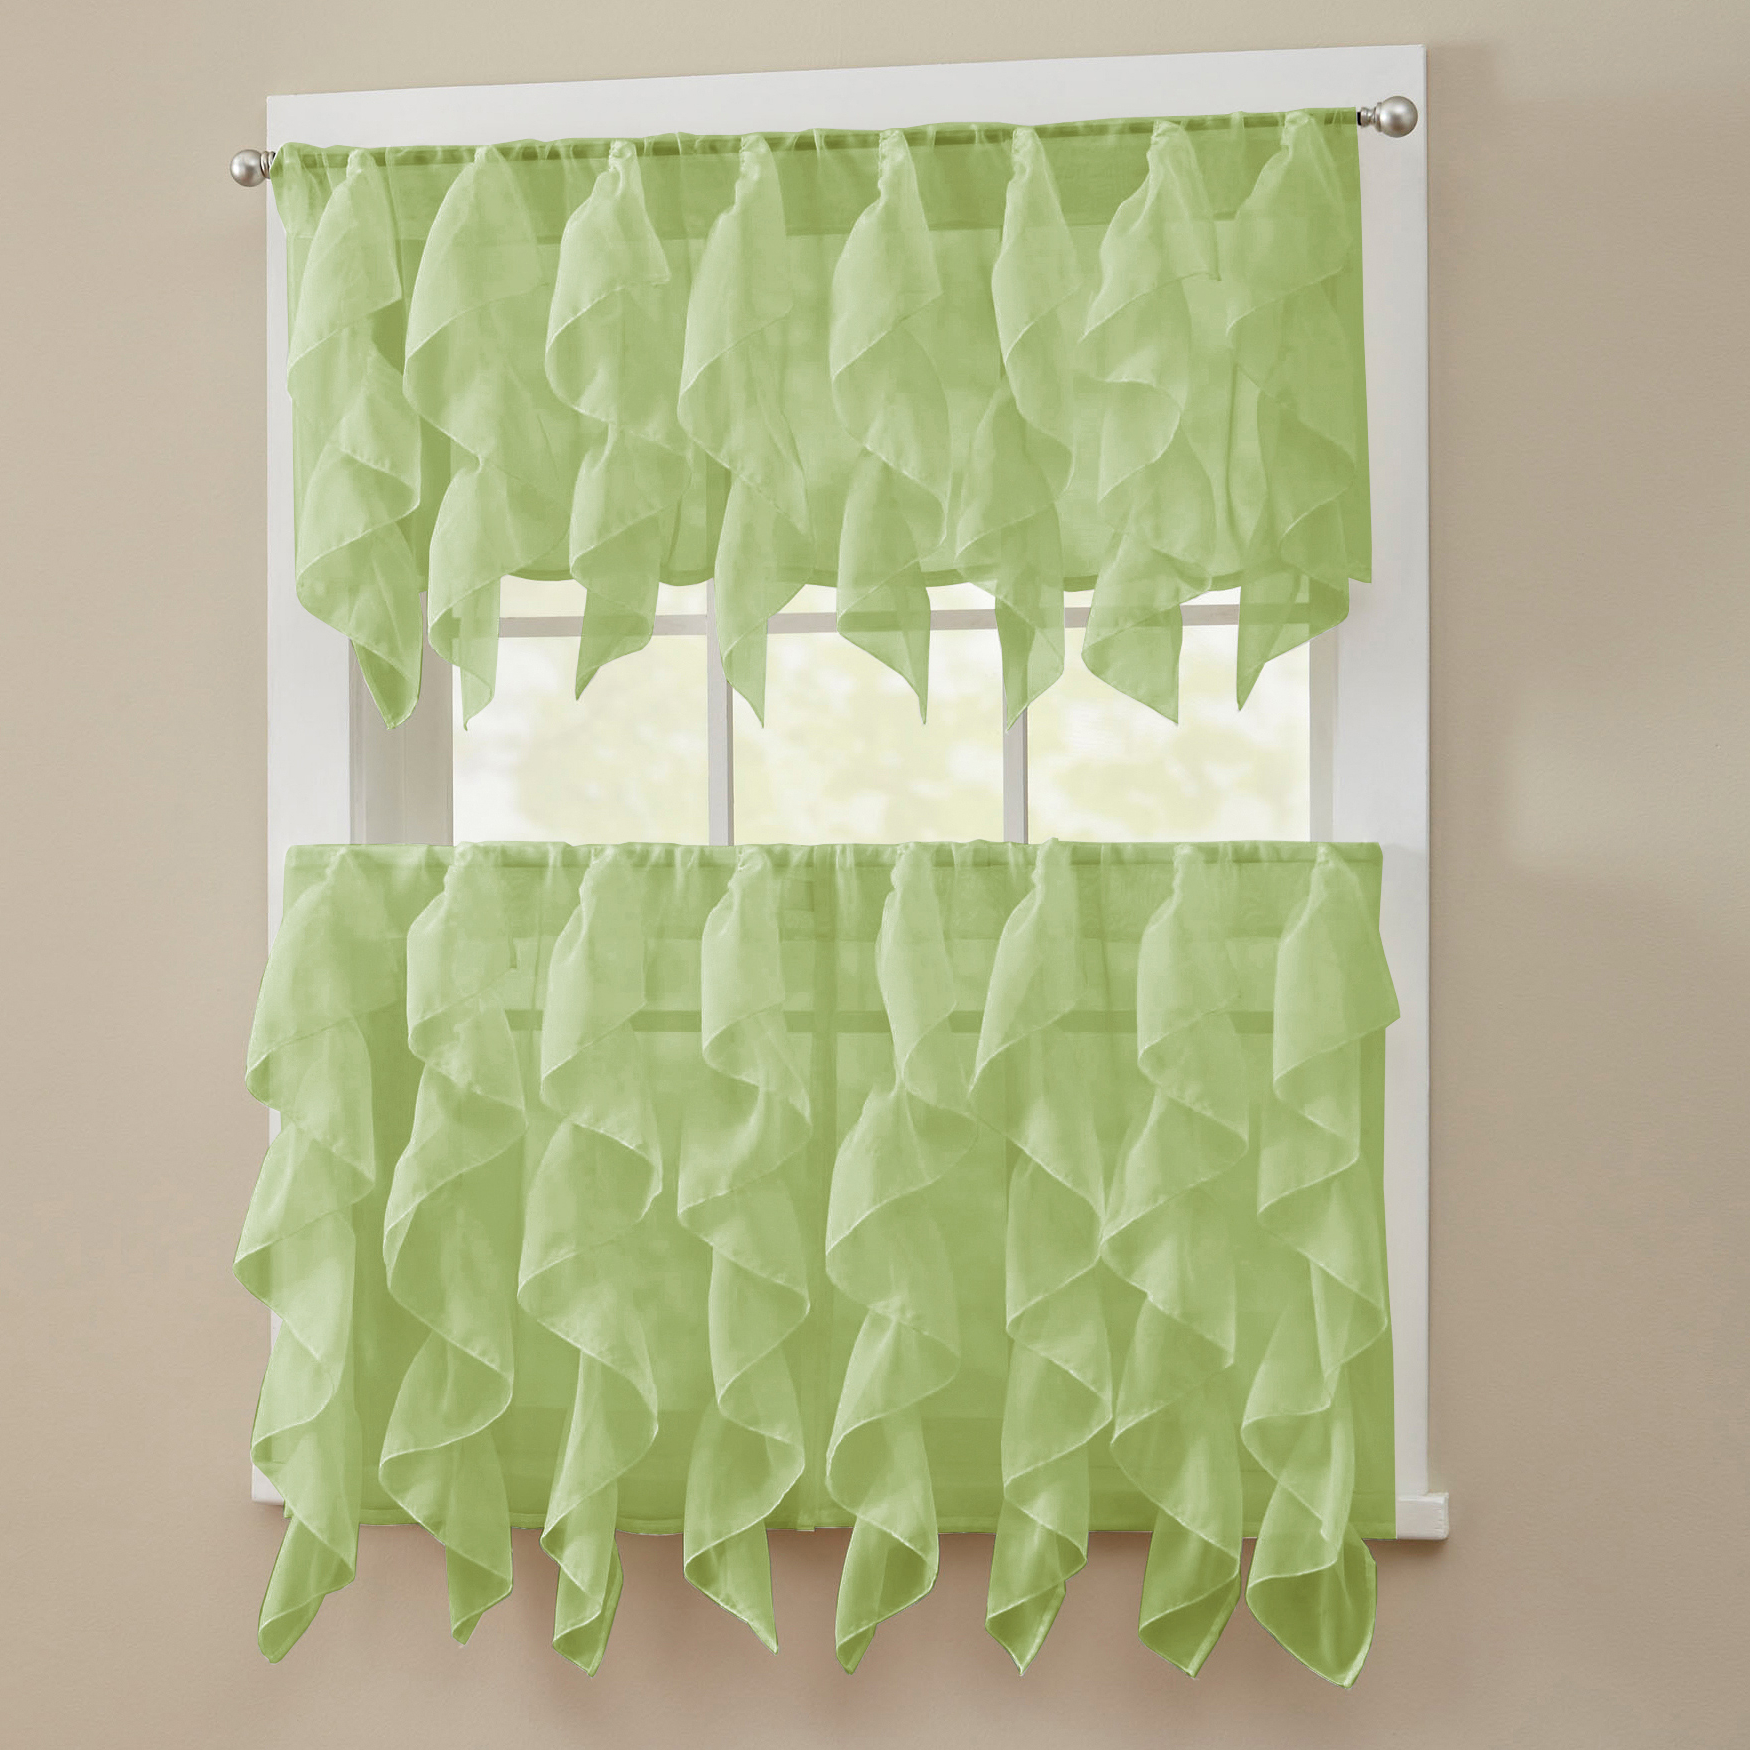 Recent Details About Sheer Voile Vertical Ruffle Window Kitchen Curtain Tiers Or Valance Sage Throughout Chic Sheer Voile Vertical Ruffled Window Curtain Tiers (View 9 of 20)